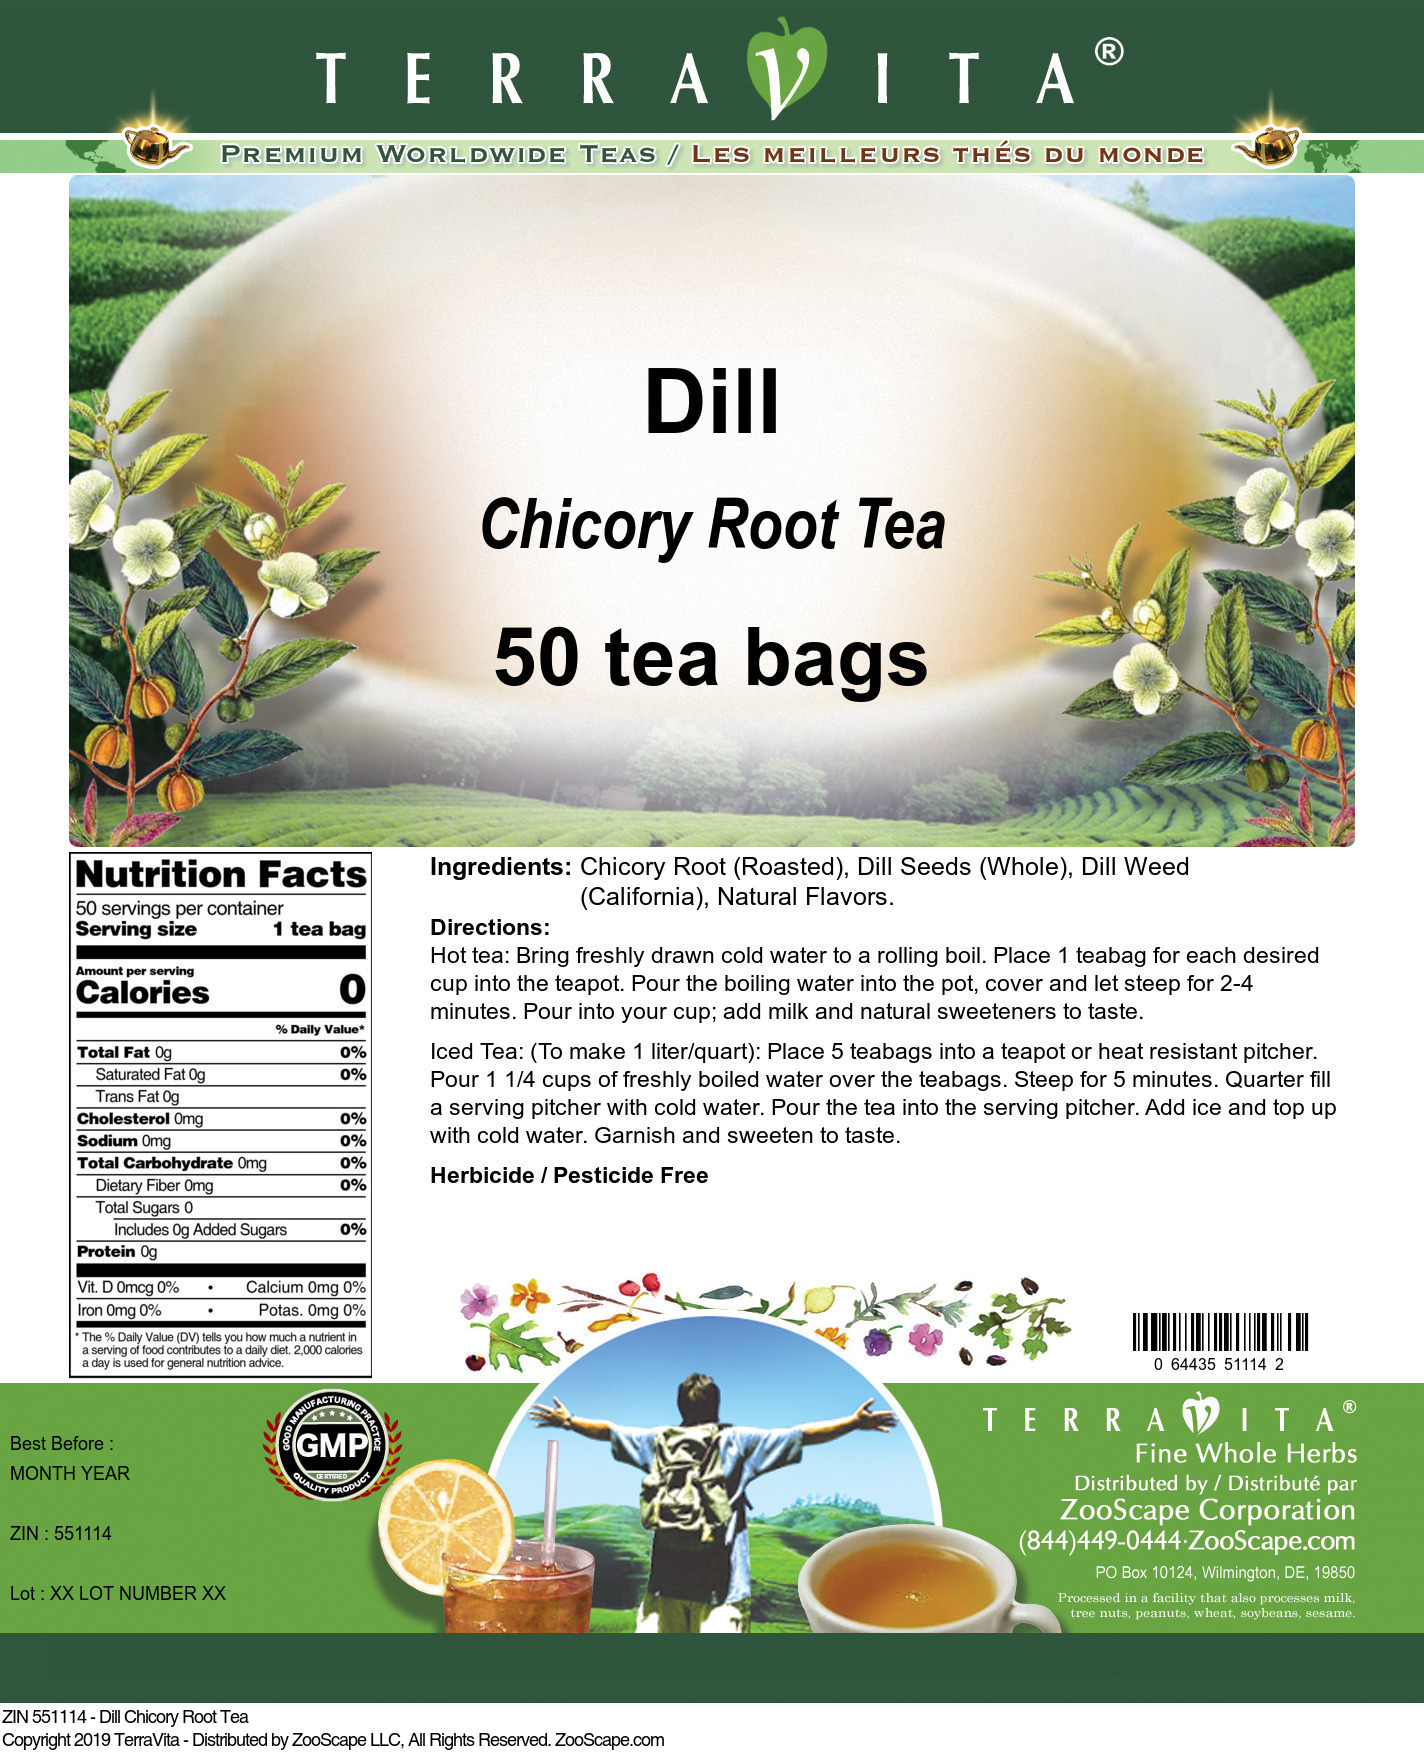 Dill Chicory Root Tea